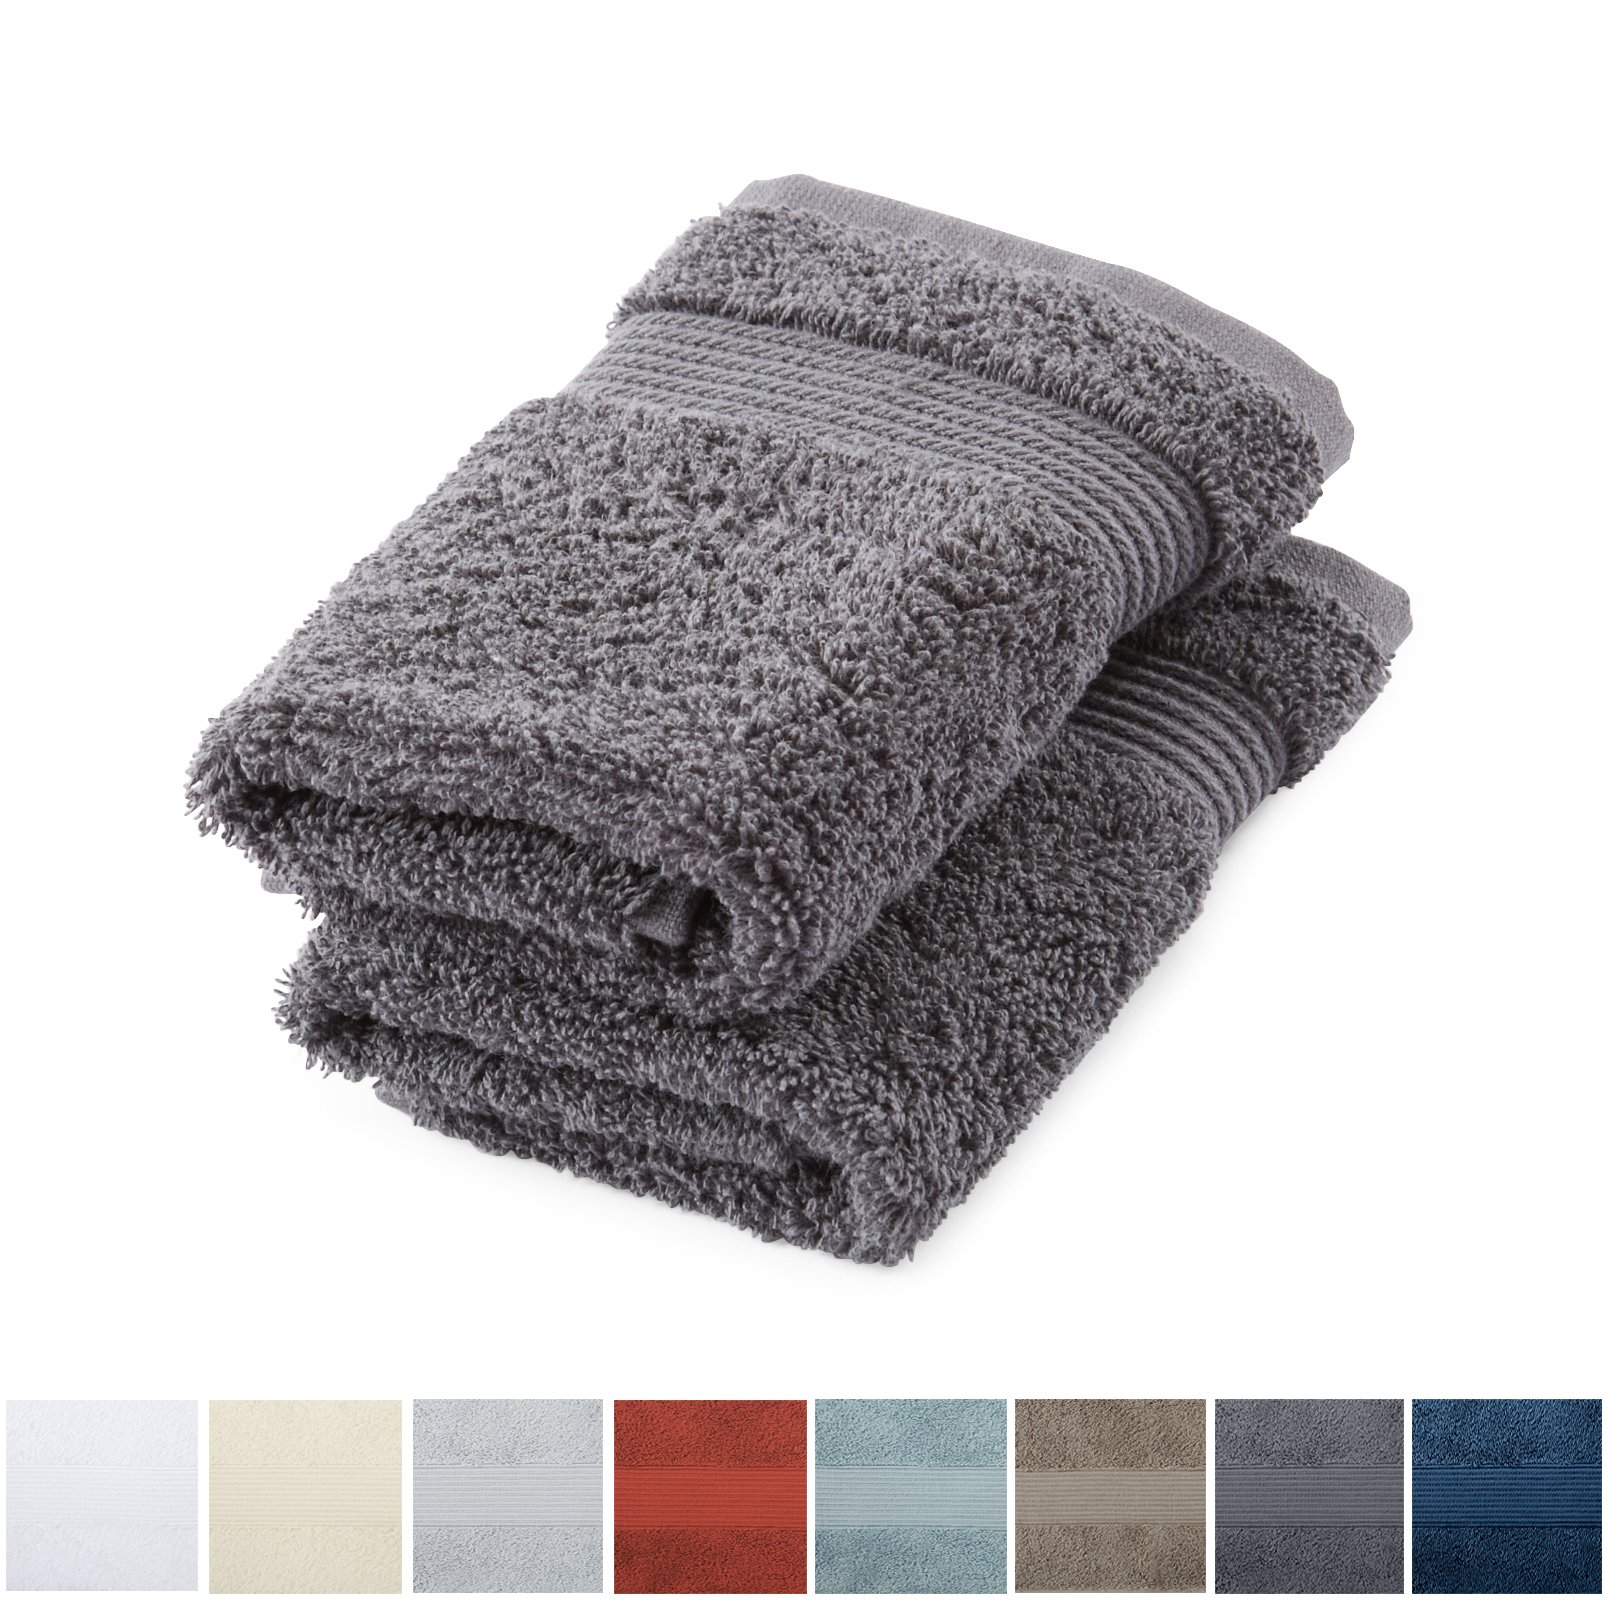 Great Bay Home 2-Pack Luxury Hotel/Spa 100% Turkish Cotton Washcloths, 600 GSM. Includes 2 Washcloths. Melanie Collection By Brand. (Washcloths (2x), Steel Grey)